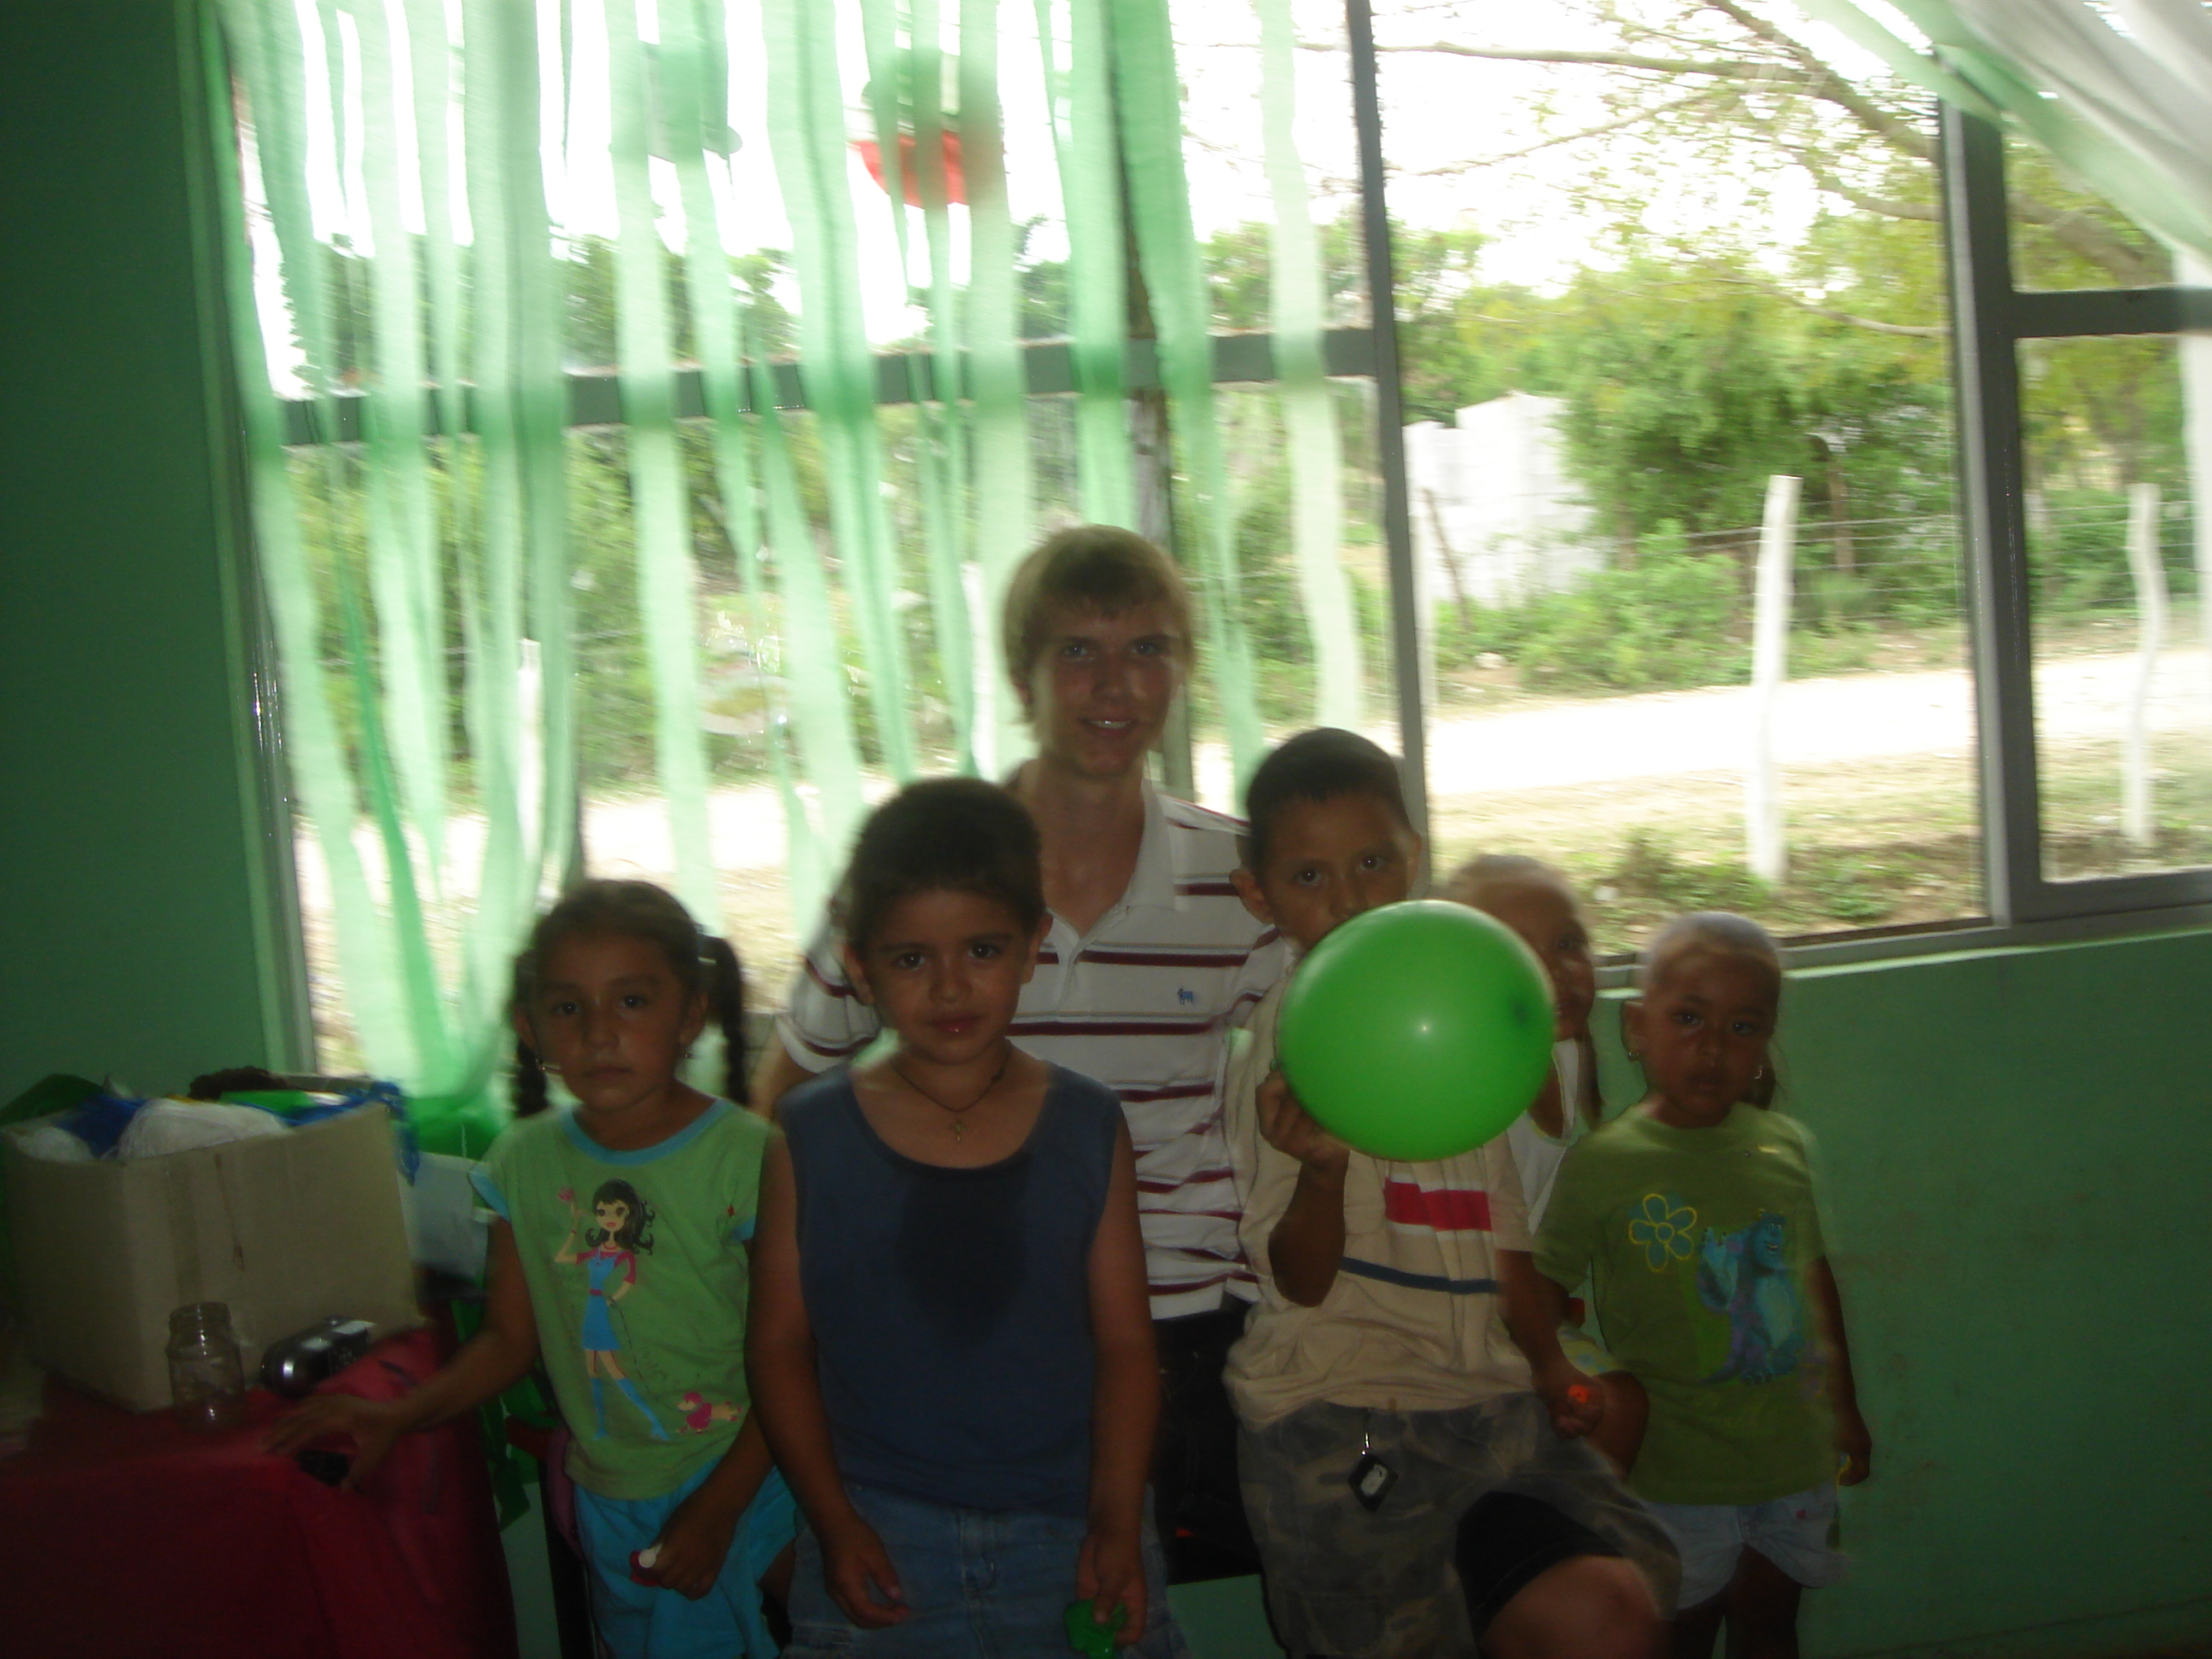 Aaron and some Mexican children